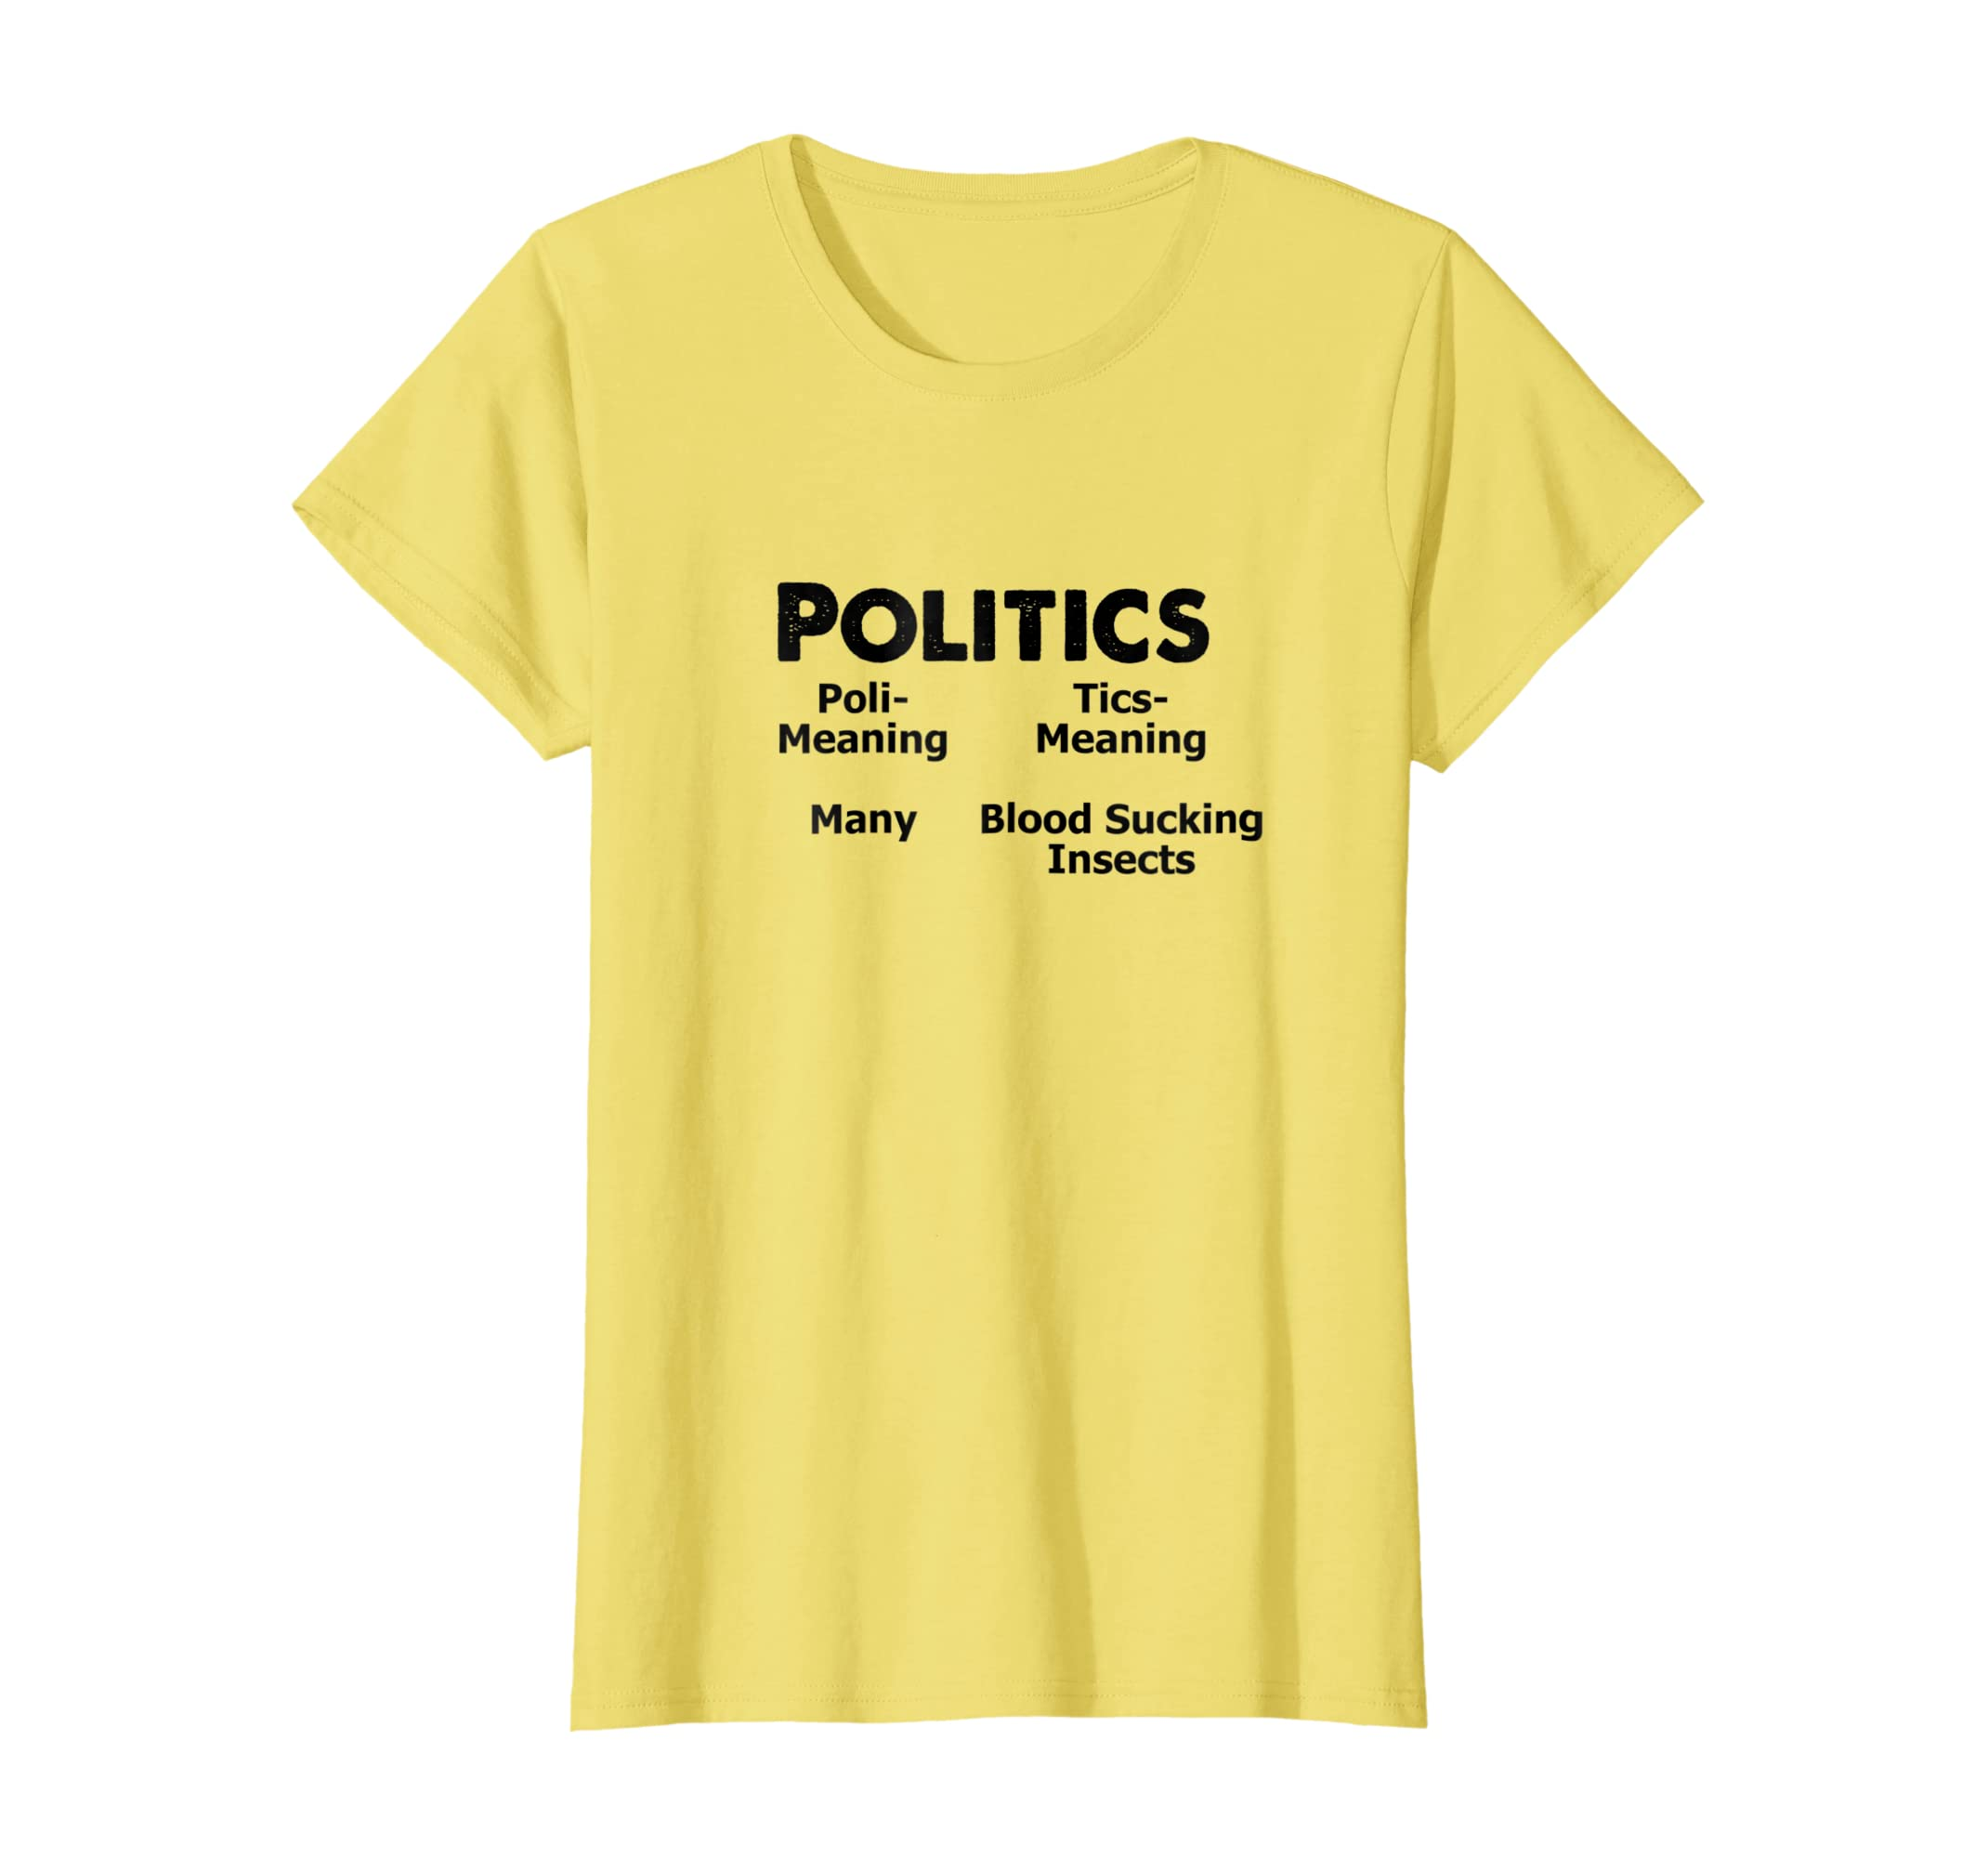 b770e26f Amazon.com: Politics Funny Gift T-Shirt Many Blood Sucking Insects: Clothing